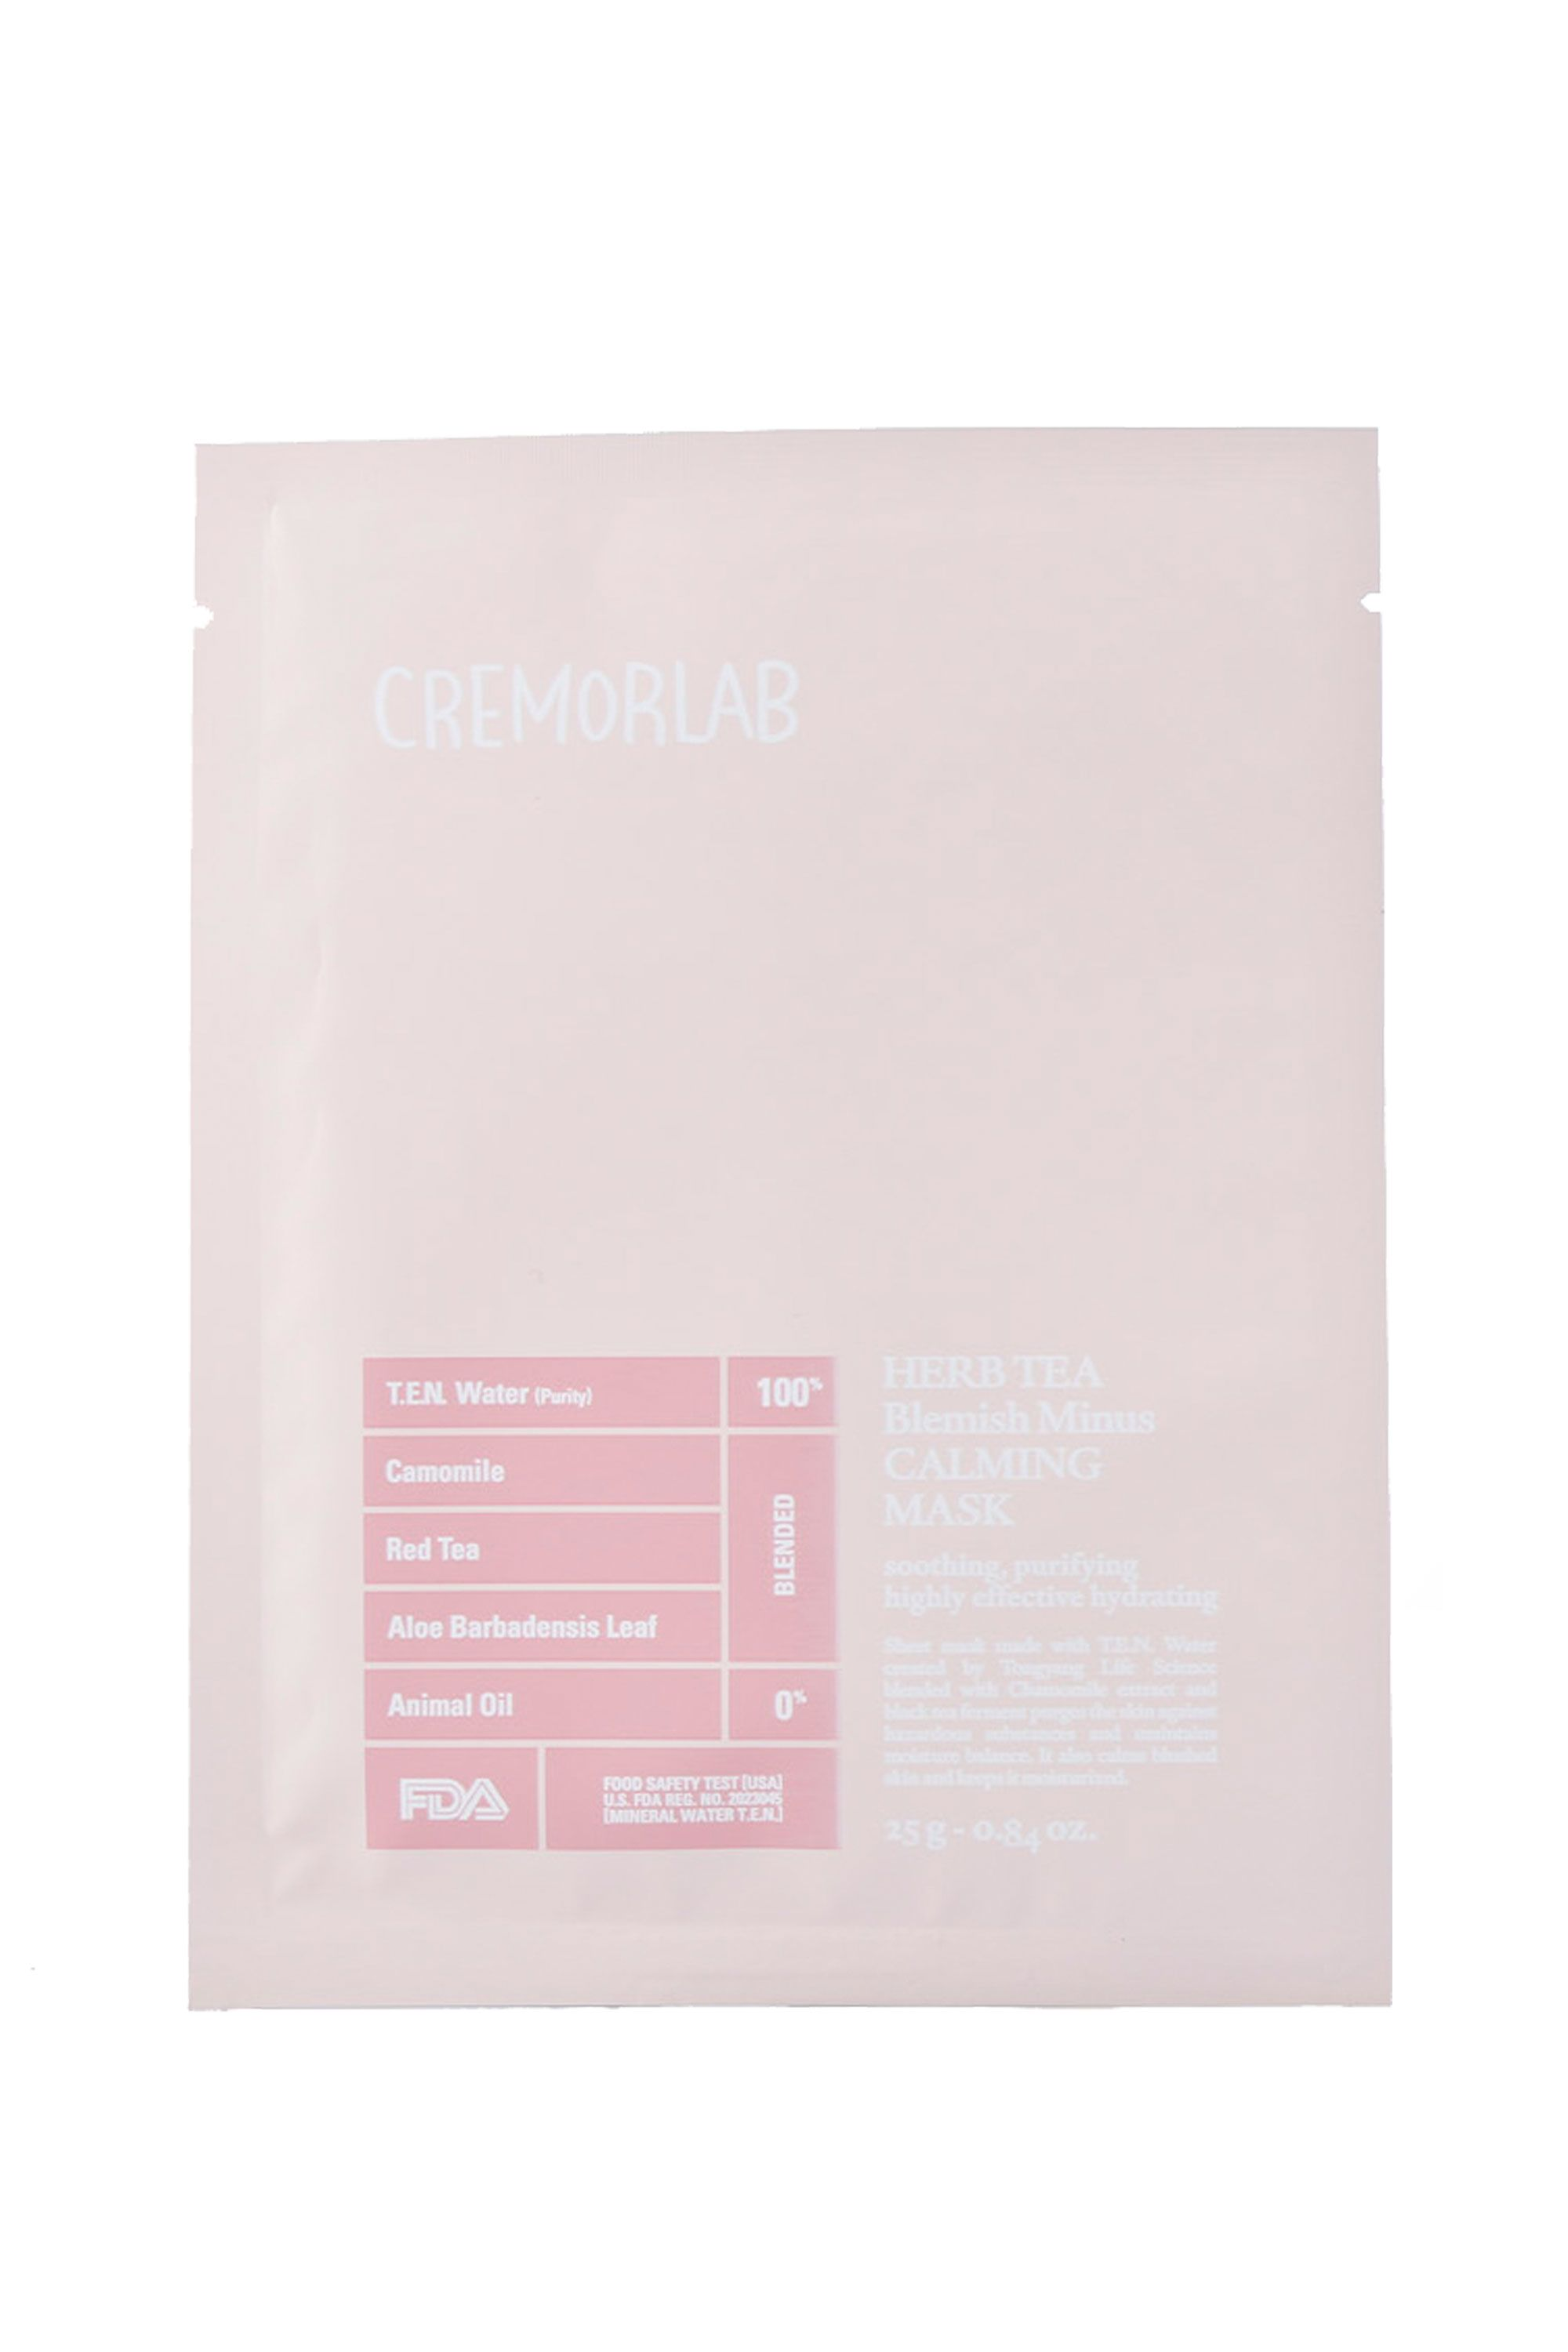 CremorLab Herb Tea Blemish Minus Calming Mask CremorLab Herb Tea Blemish Minus Calming Mask, $5 SHOP IT Smooth your skin and clear up your complexion with this potent, yet gentle mix of thermal water, polyphenols, and tannins.